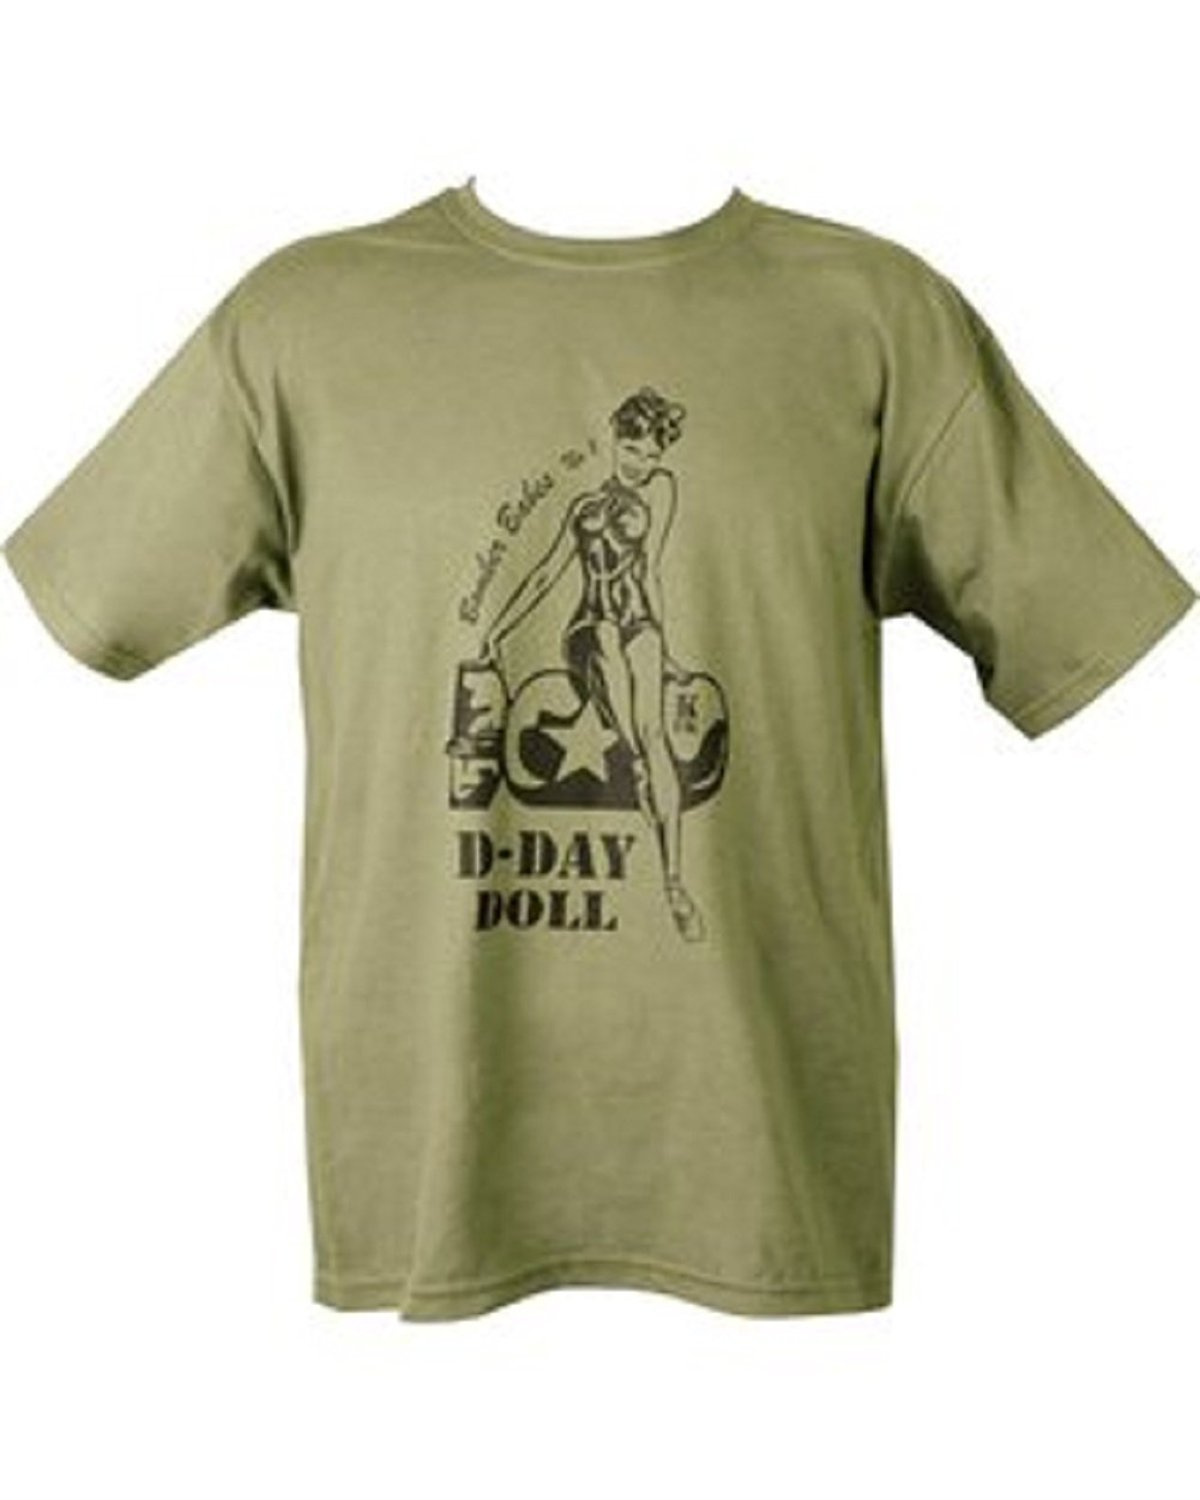 Kombat Mens Military Printed Army Combat World War 2 WW2 British US Army D-Day Doll Sexy Lady T-shirt Tshirt - Bear Essentials Clothing Company